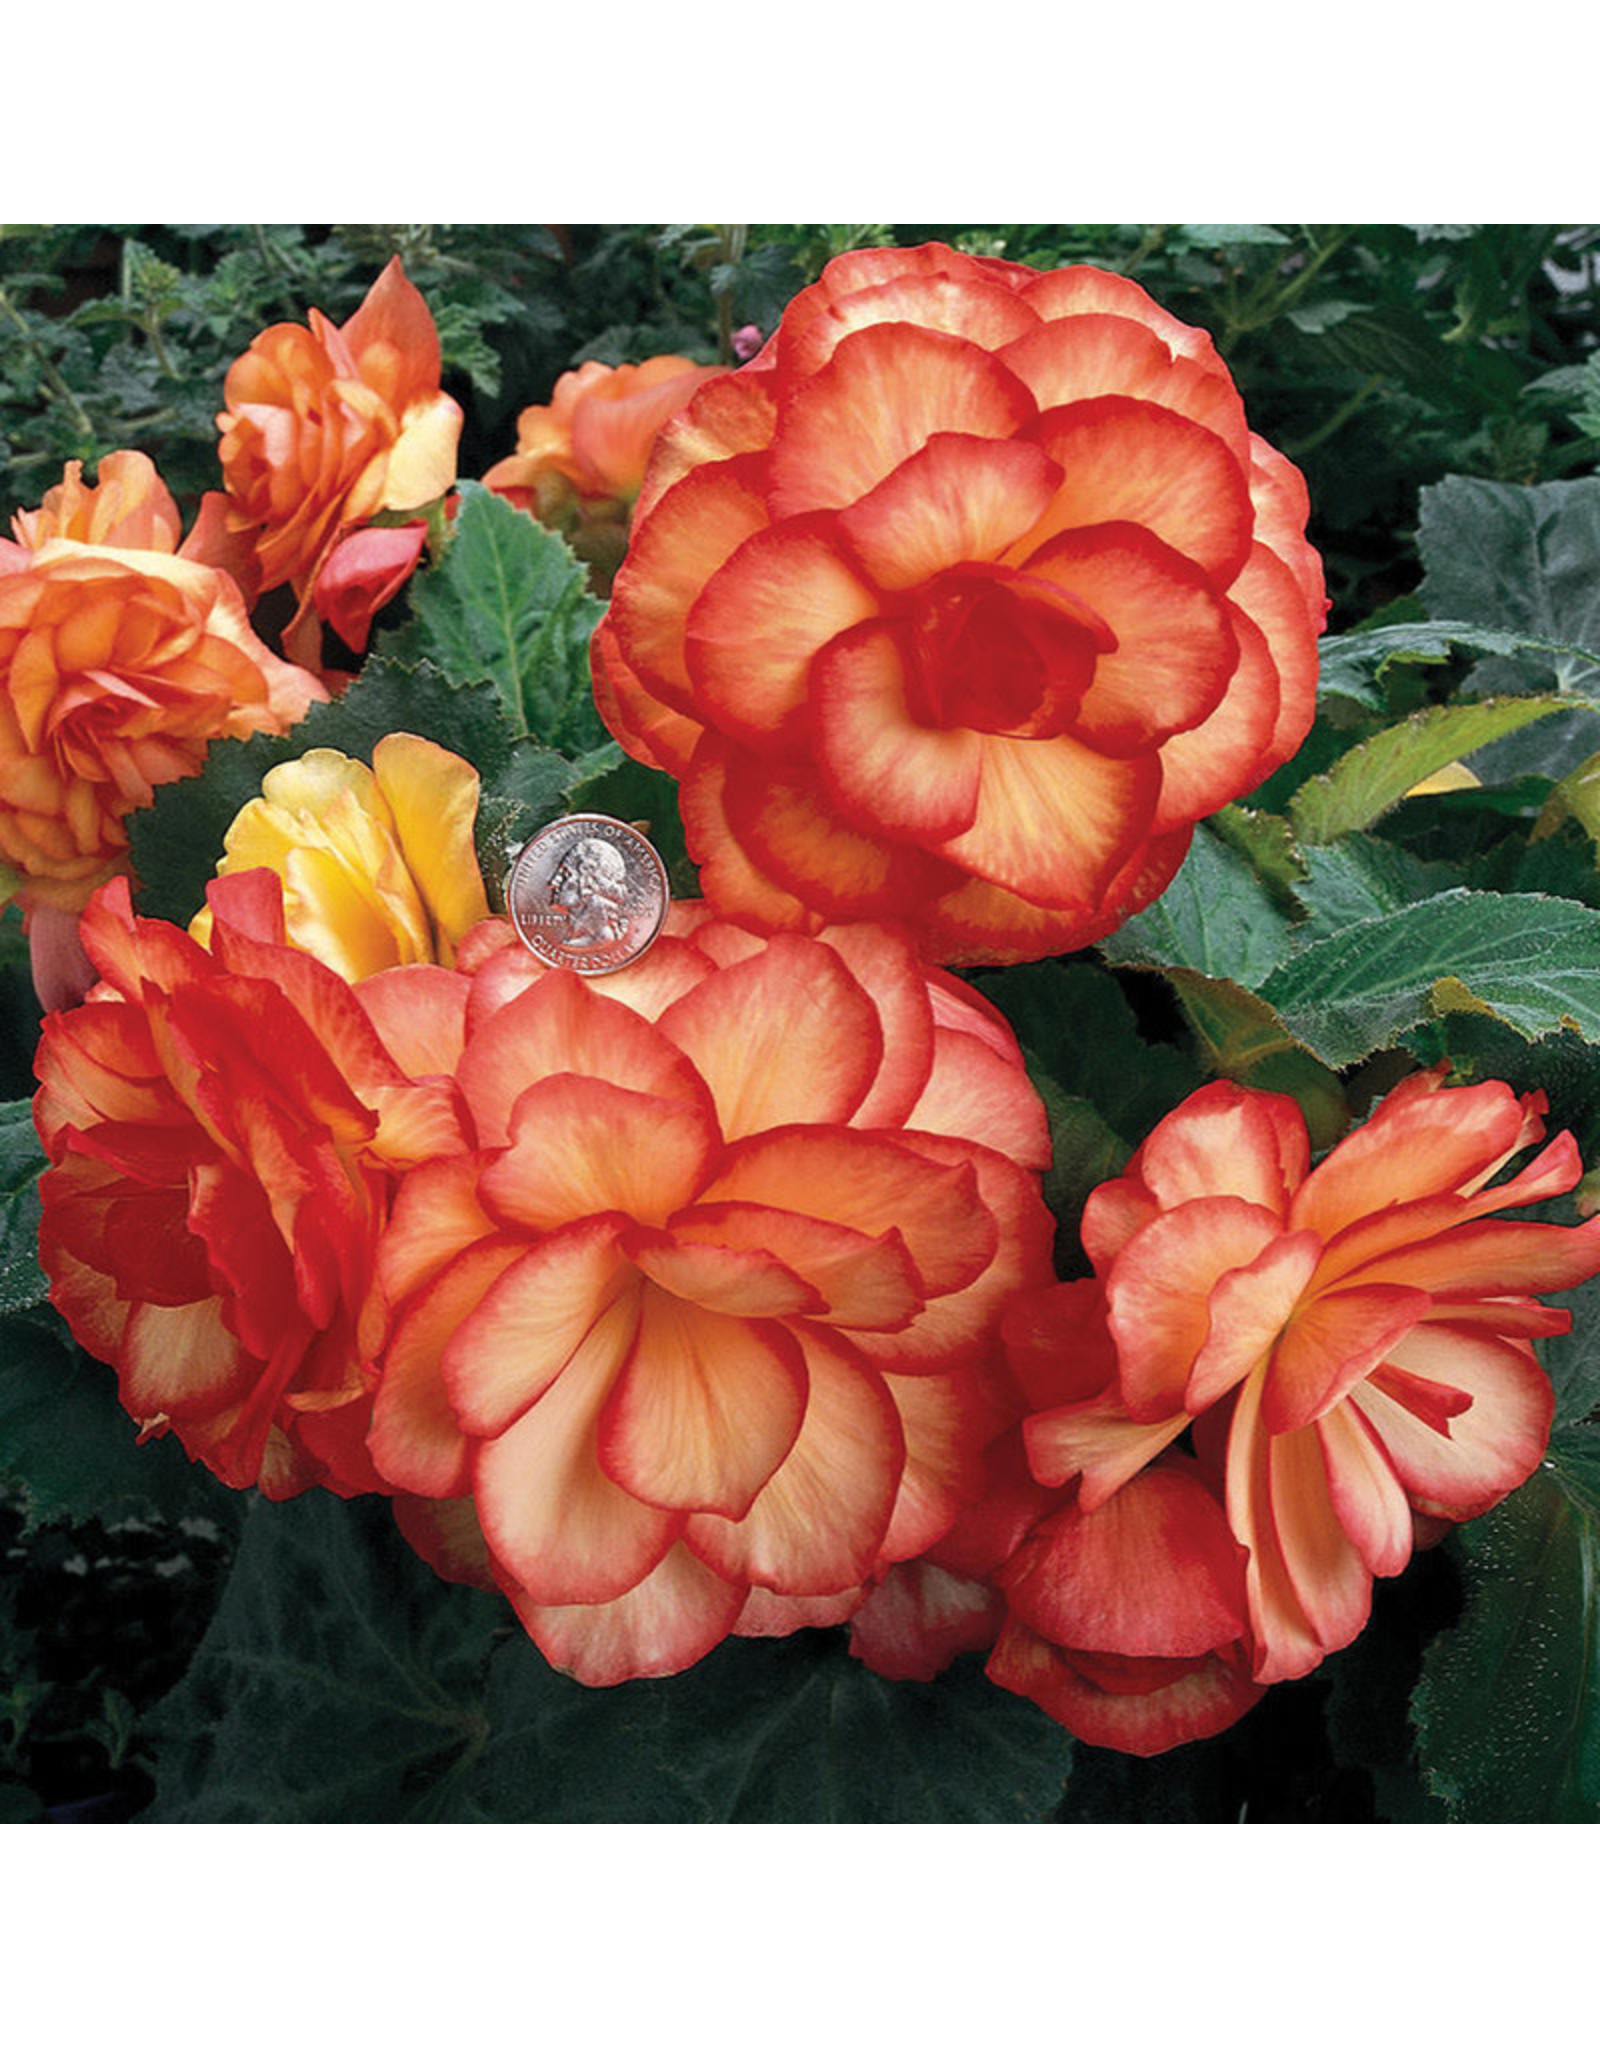 Begonia - Nonstop On Top Sunset Shade